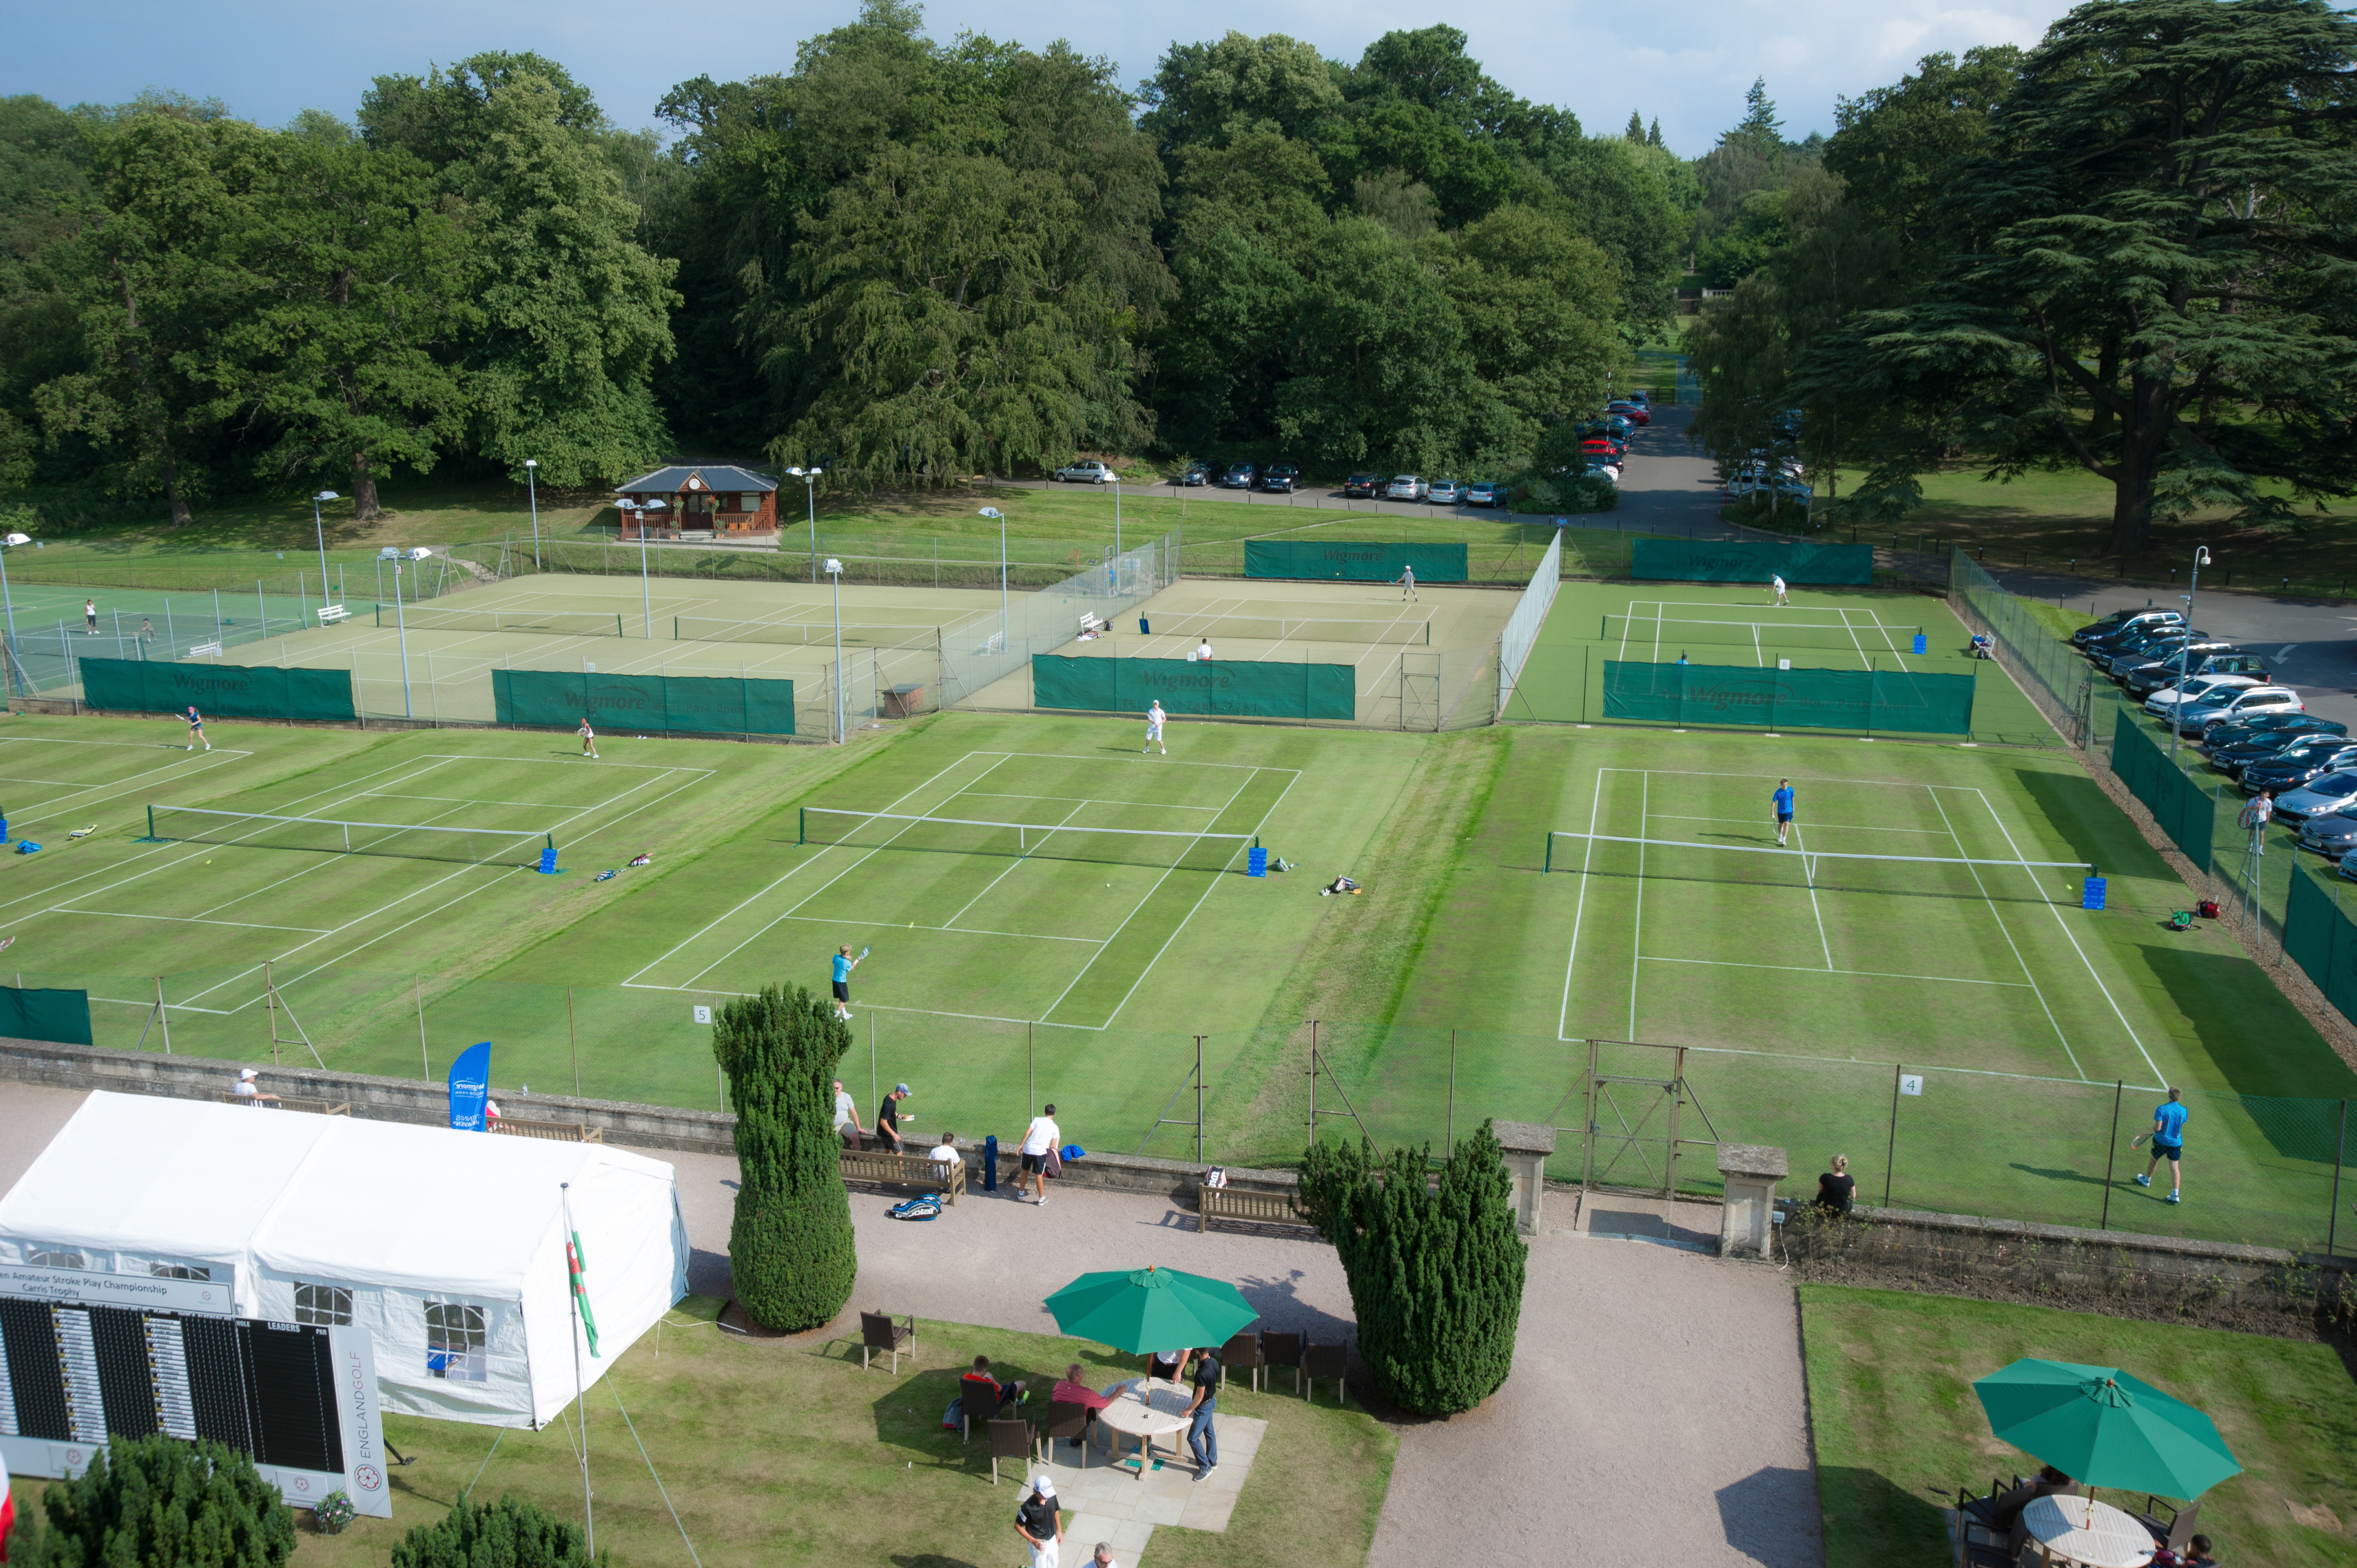 The Tennis Course At Moor Park